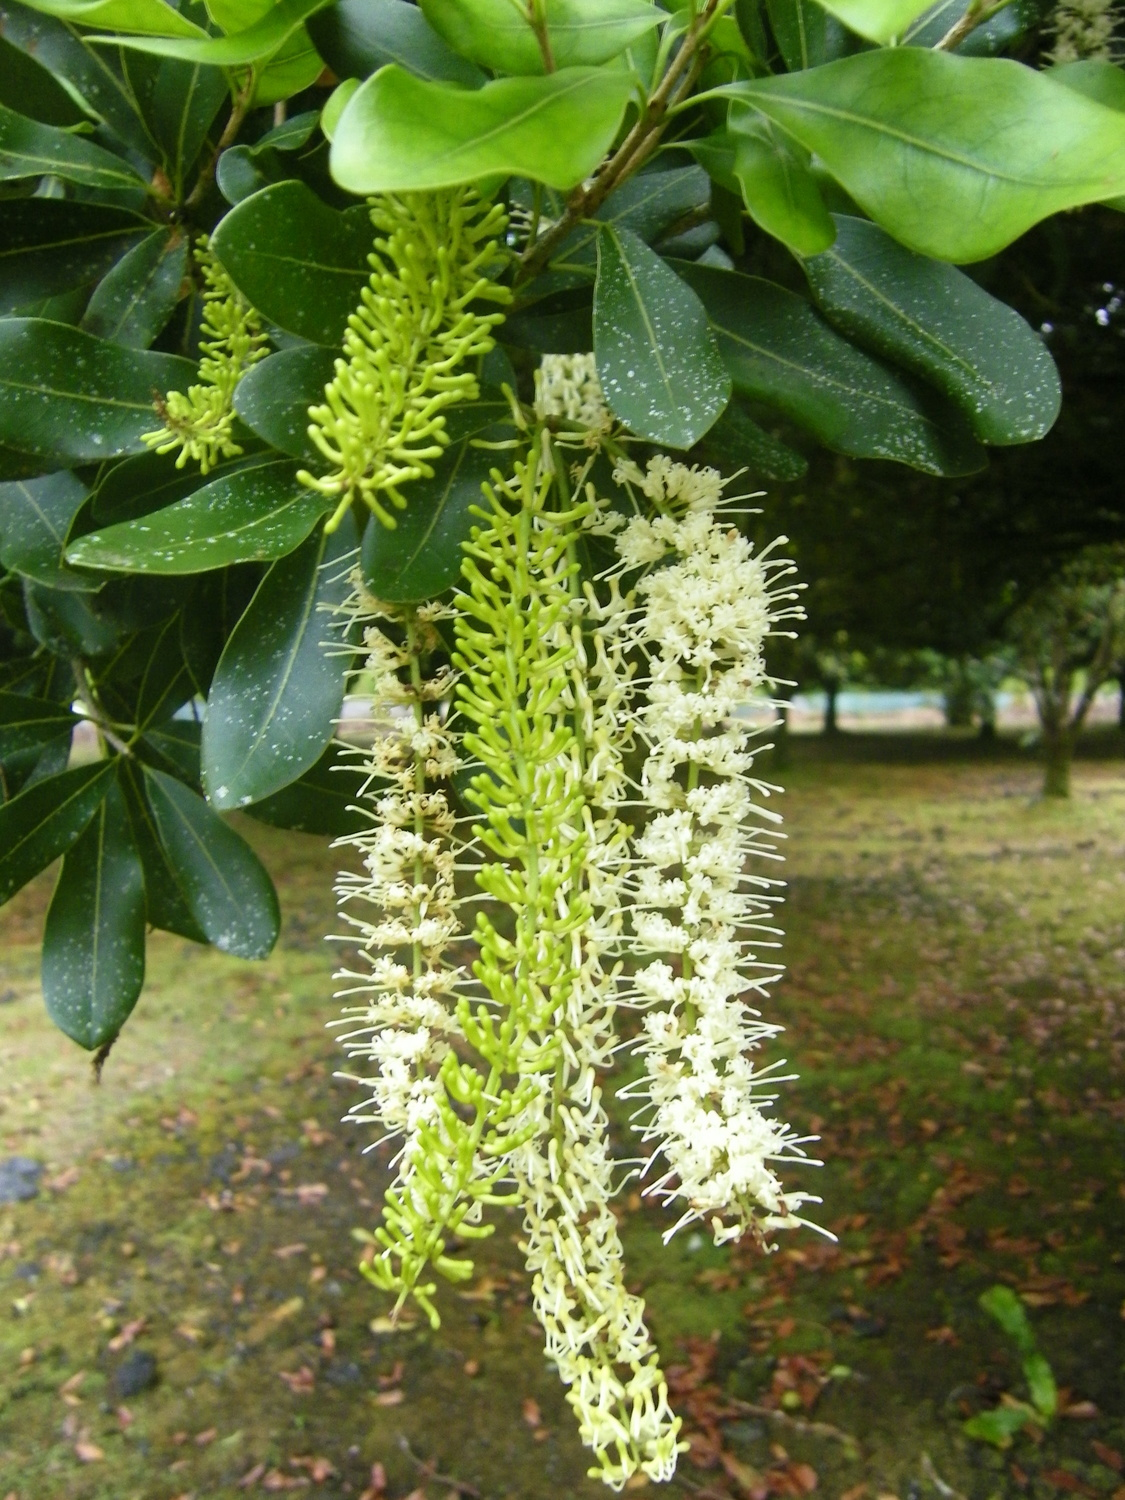 Macadamia blossoms ready for the bees to visit.